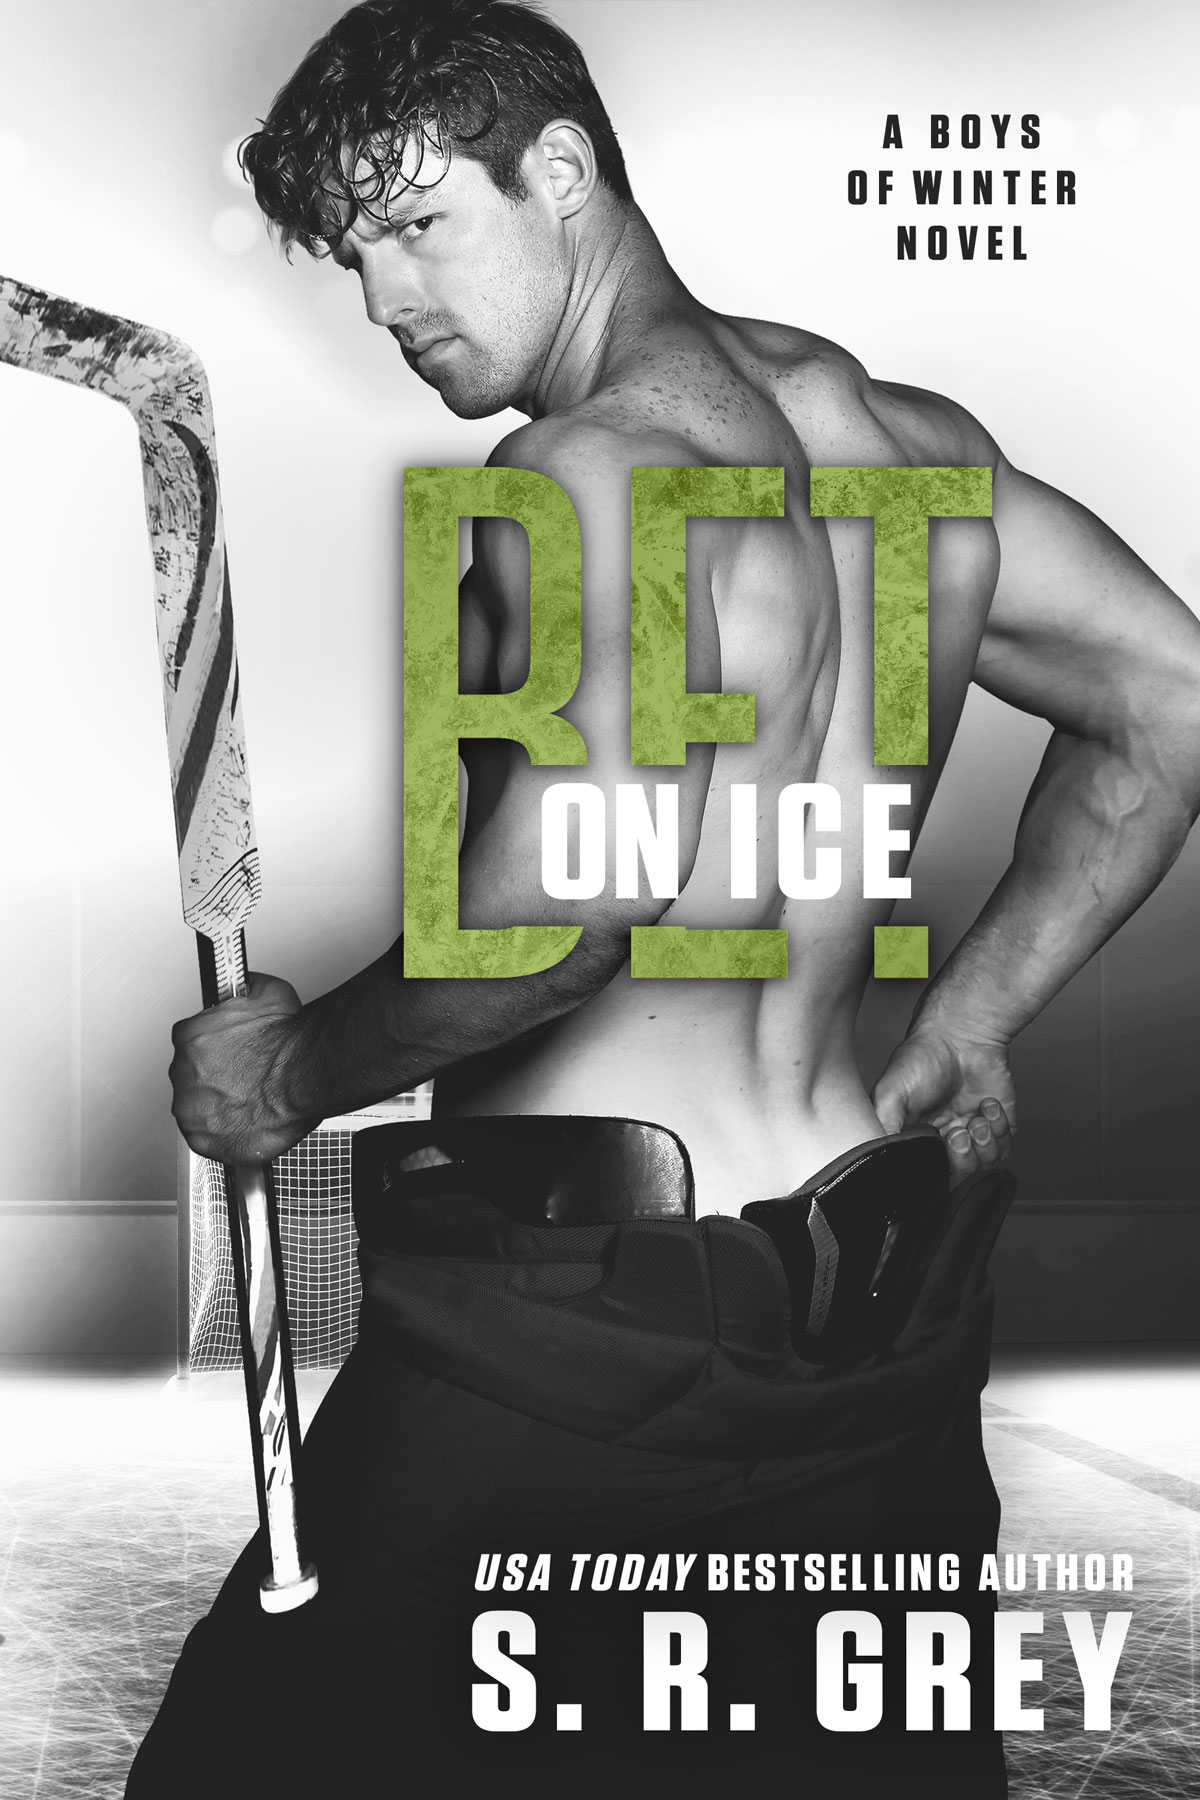 [PDF] [EPUB] Bet on Ice (Boys of Winter #9) Download by S.R. Grey